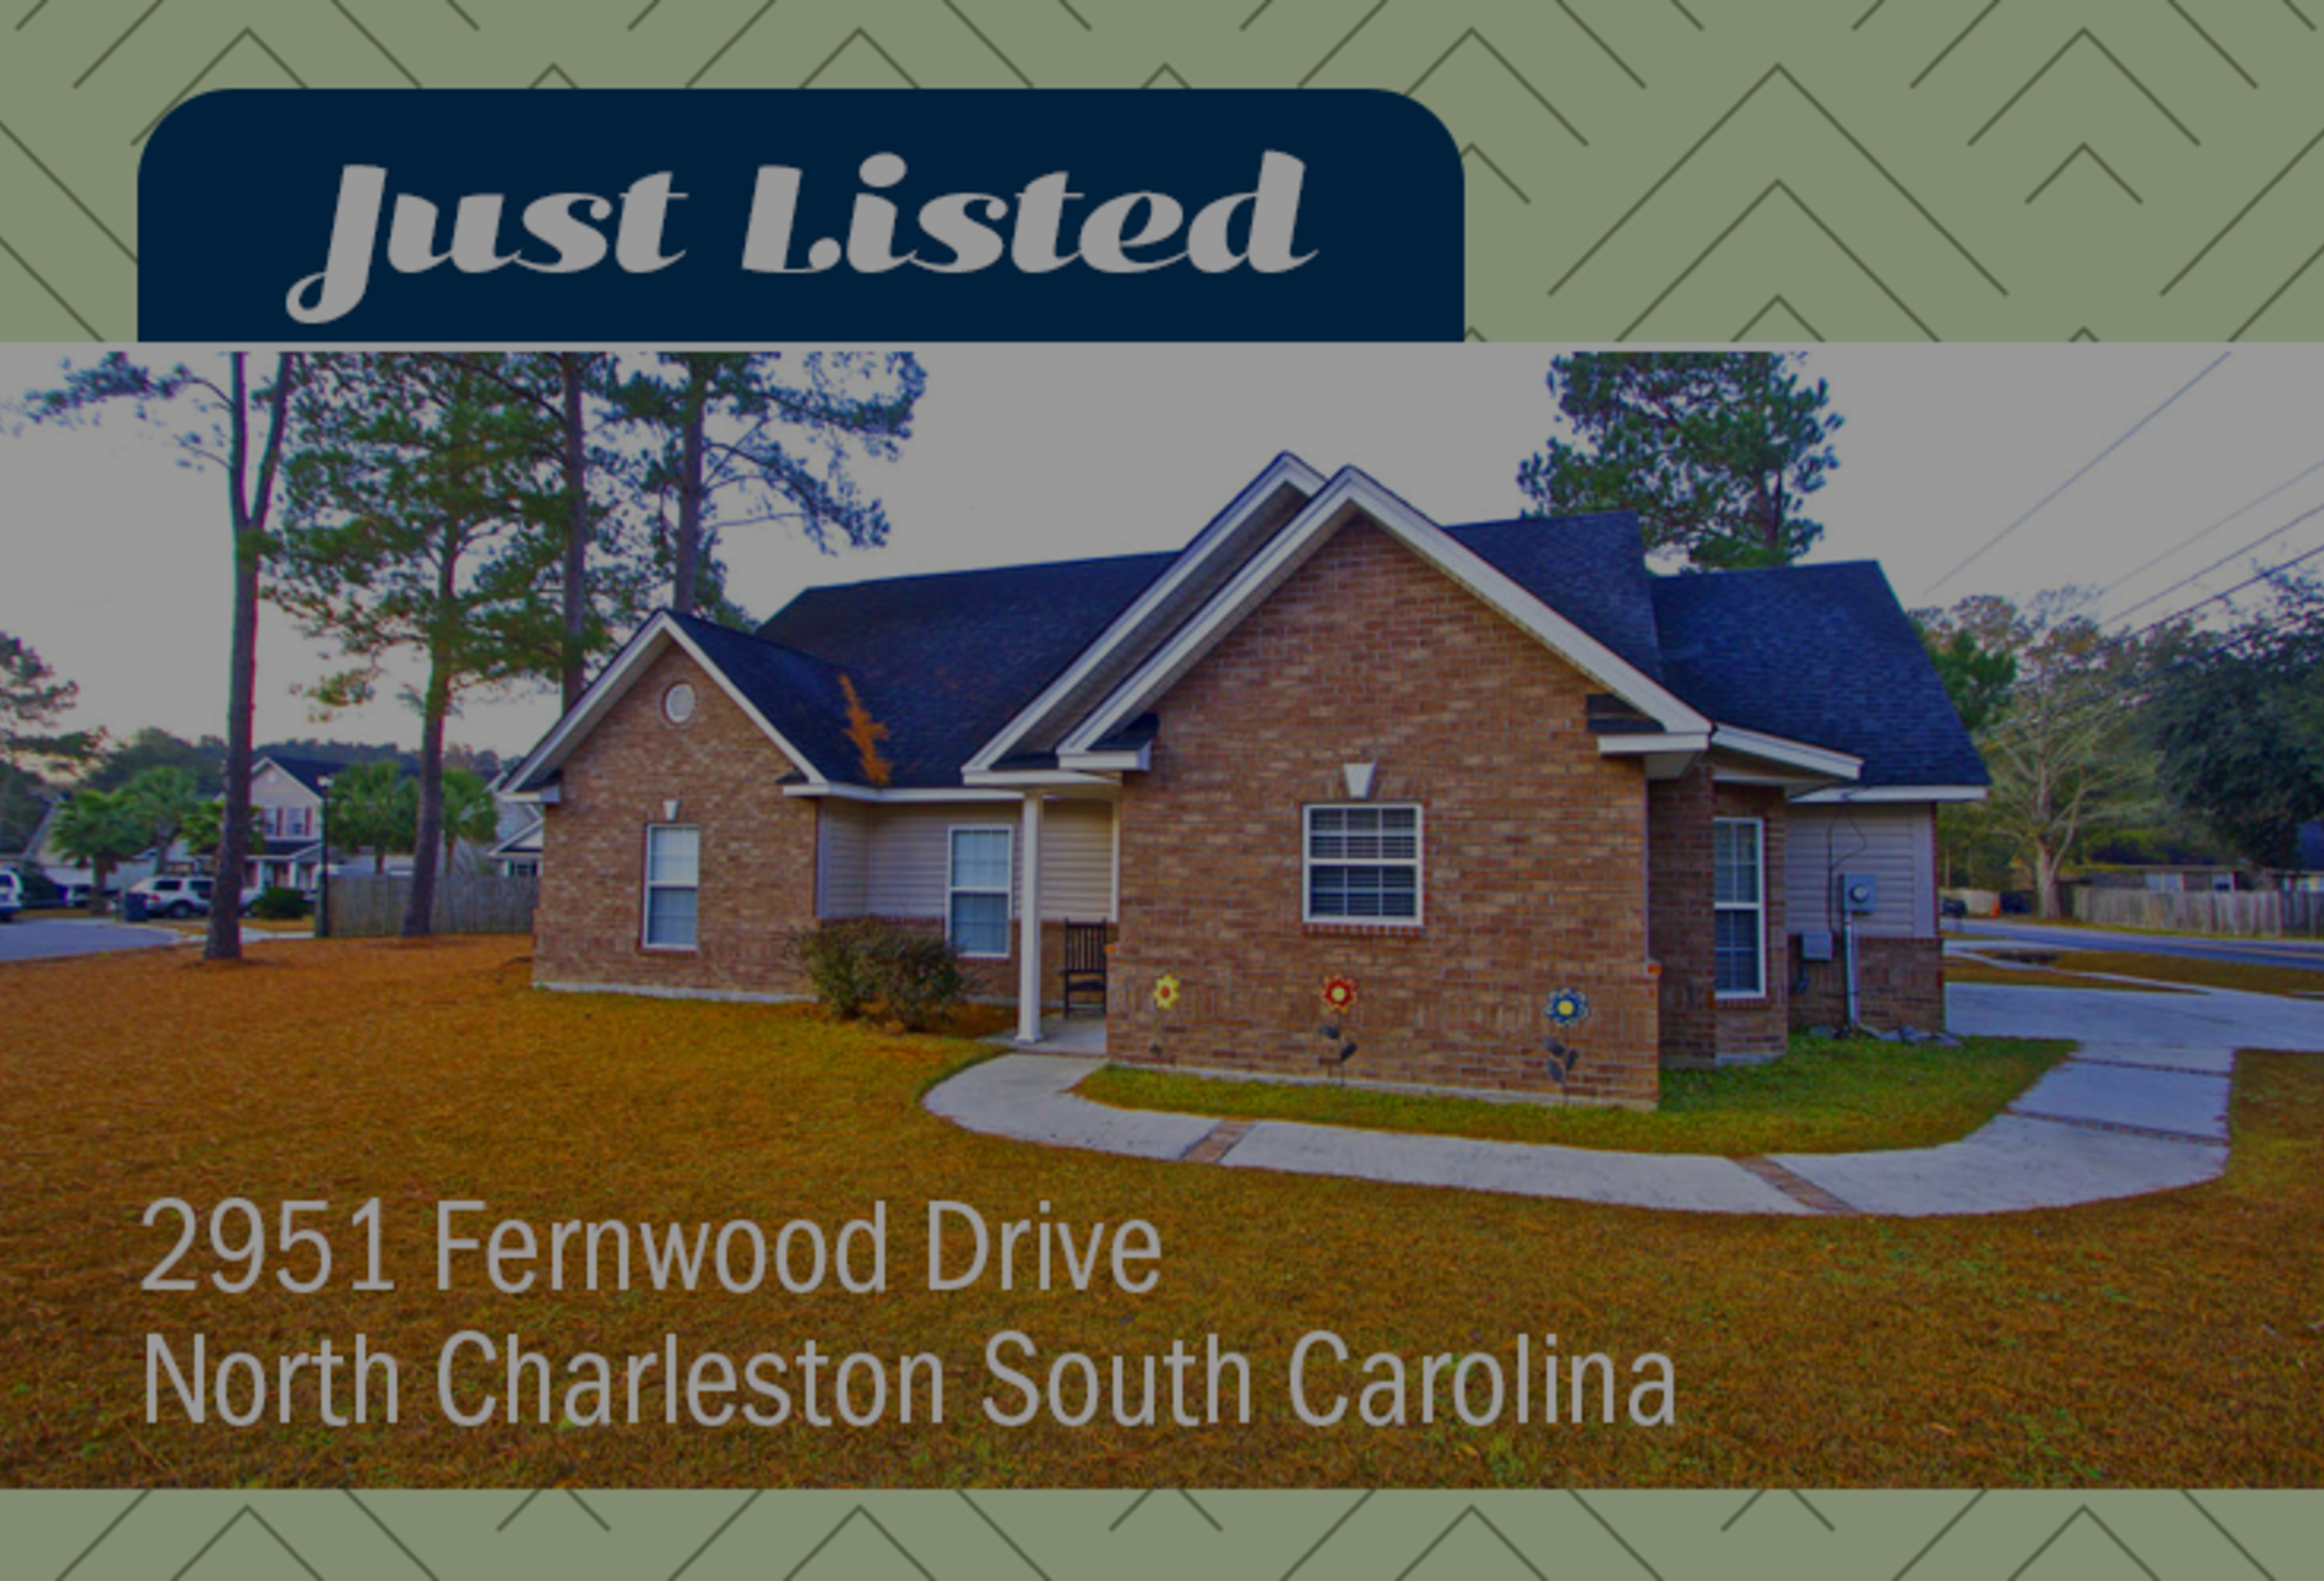 新品上市:2951 Fernwood Drive in North Charleston